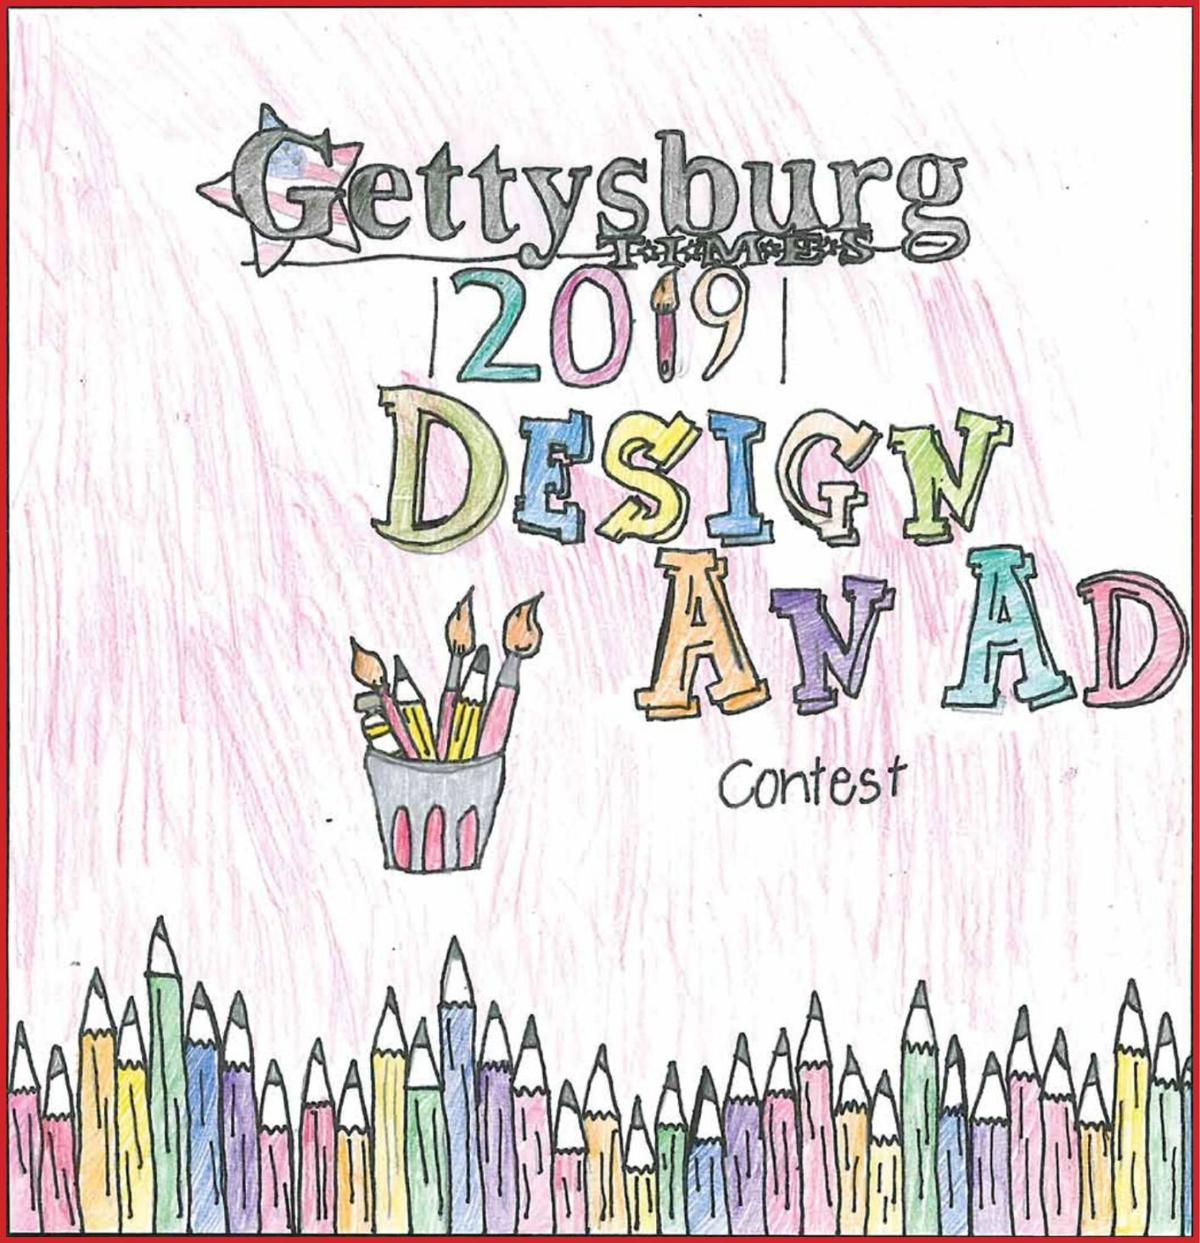 2019 Design an Ad